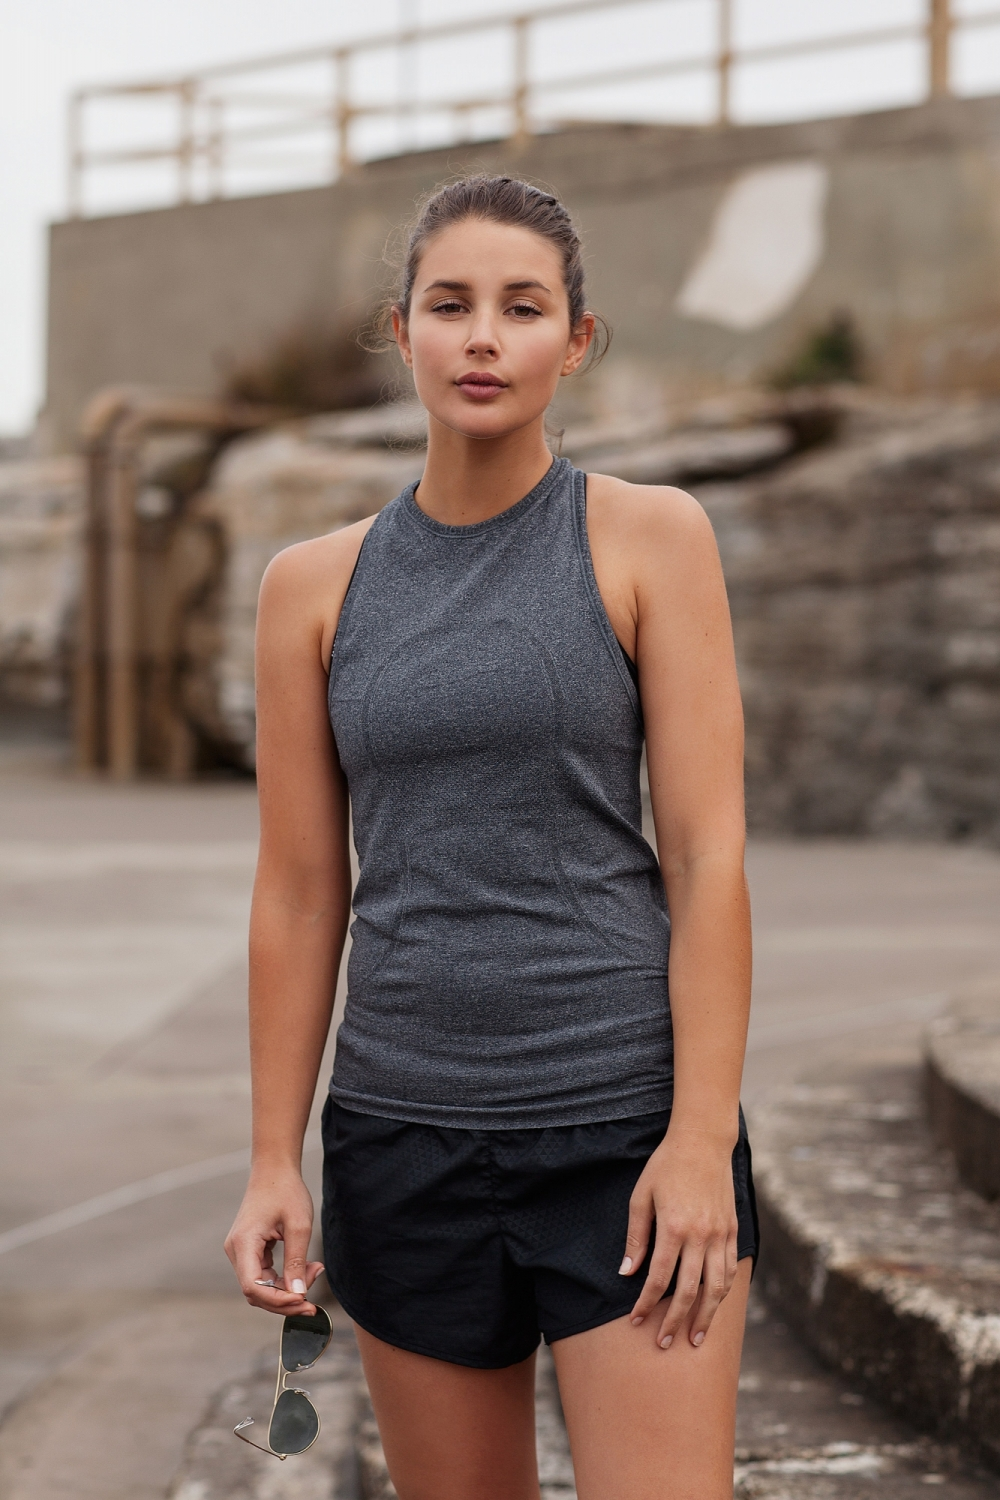 web-Harperandharley_activewear_gym_healthy_fashion-blogger_lululemon_nike_5